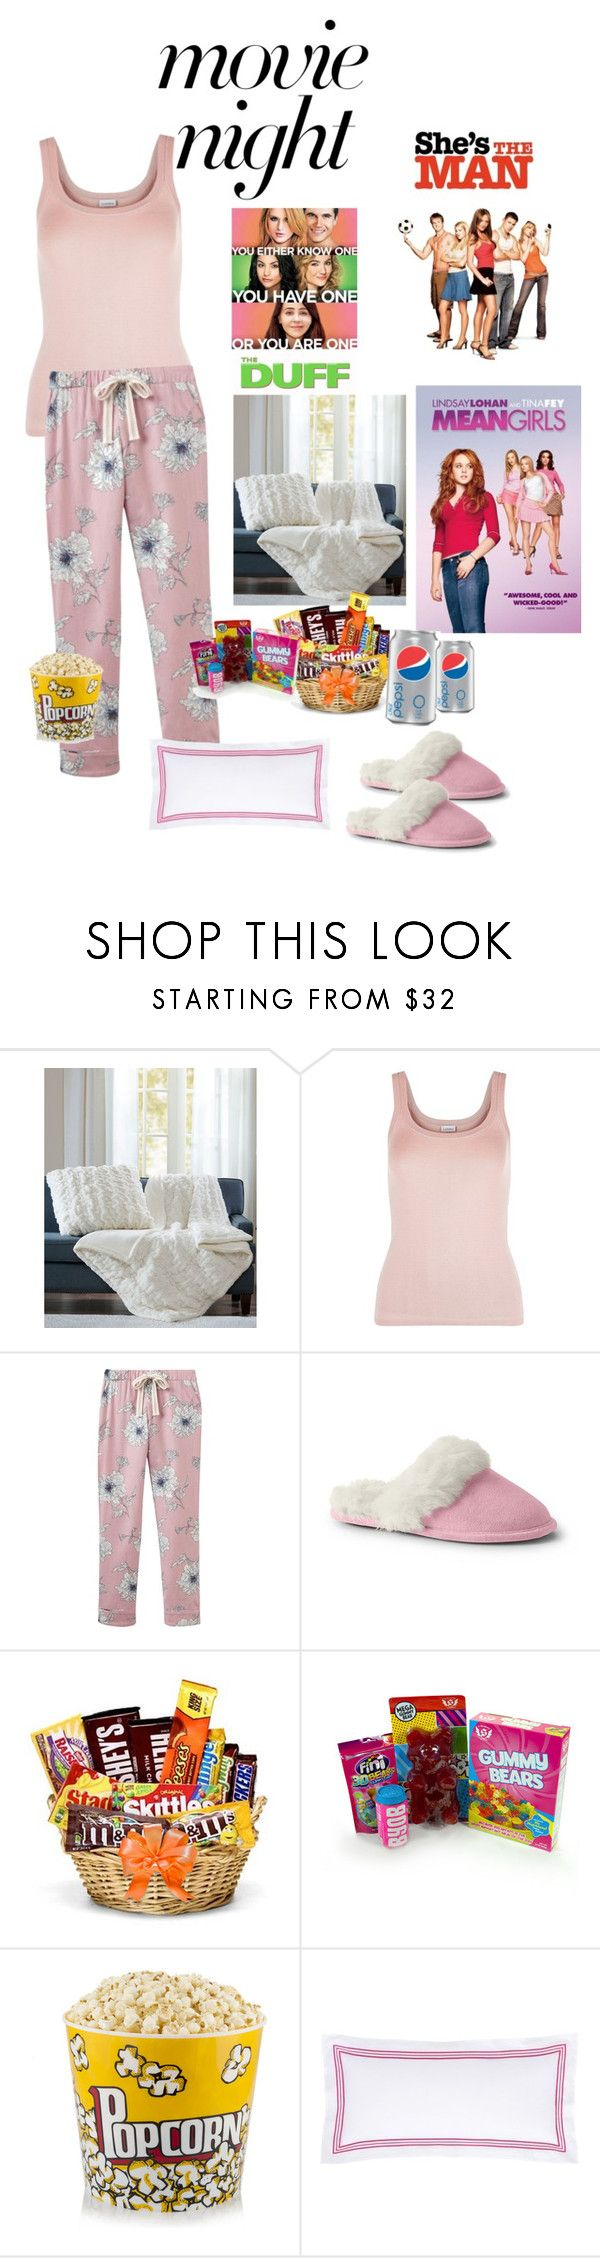 """""""Movie Night"""" by cindy-allaby ❤ liked on Polyvore featuring Madison Park, La Perla, Joules, Lands' End and Pine Cone Hill"""